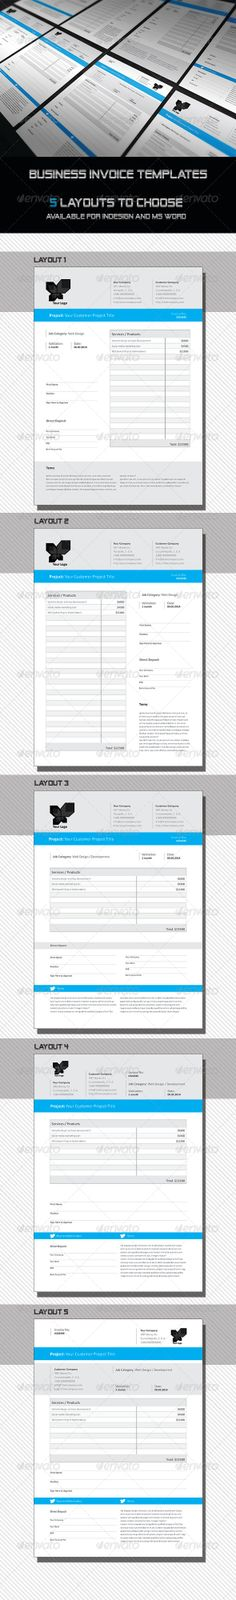 Business Invoice  Us Letter  Proposals  Invoices Stationery